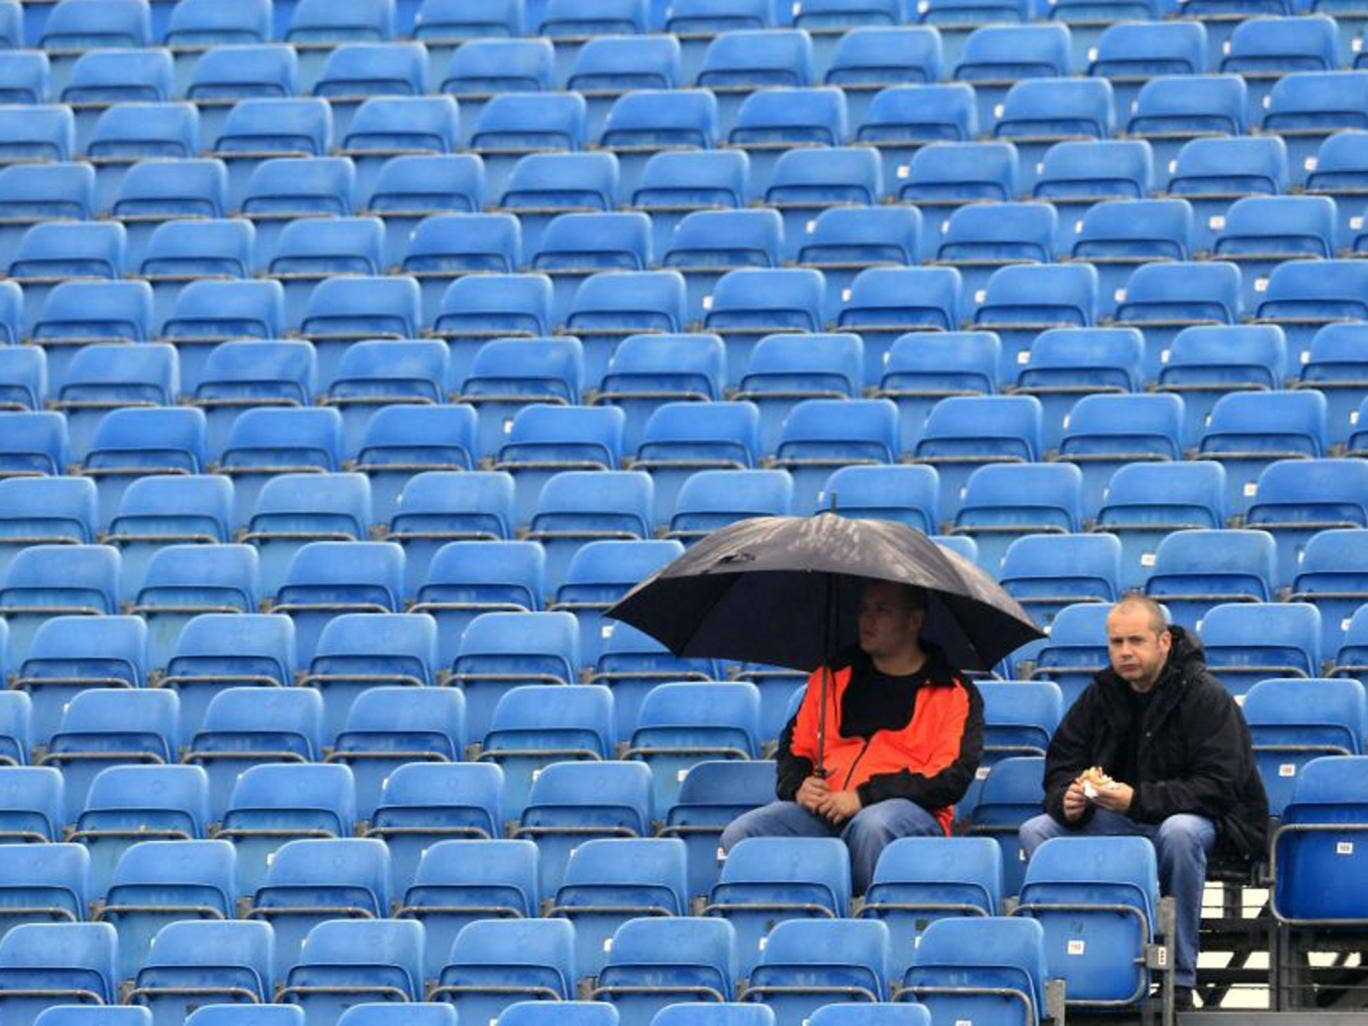 Spectators sit in the rain during the first practice session at the Silverstone circuit